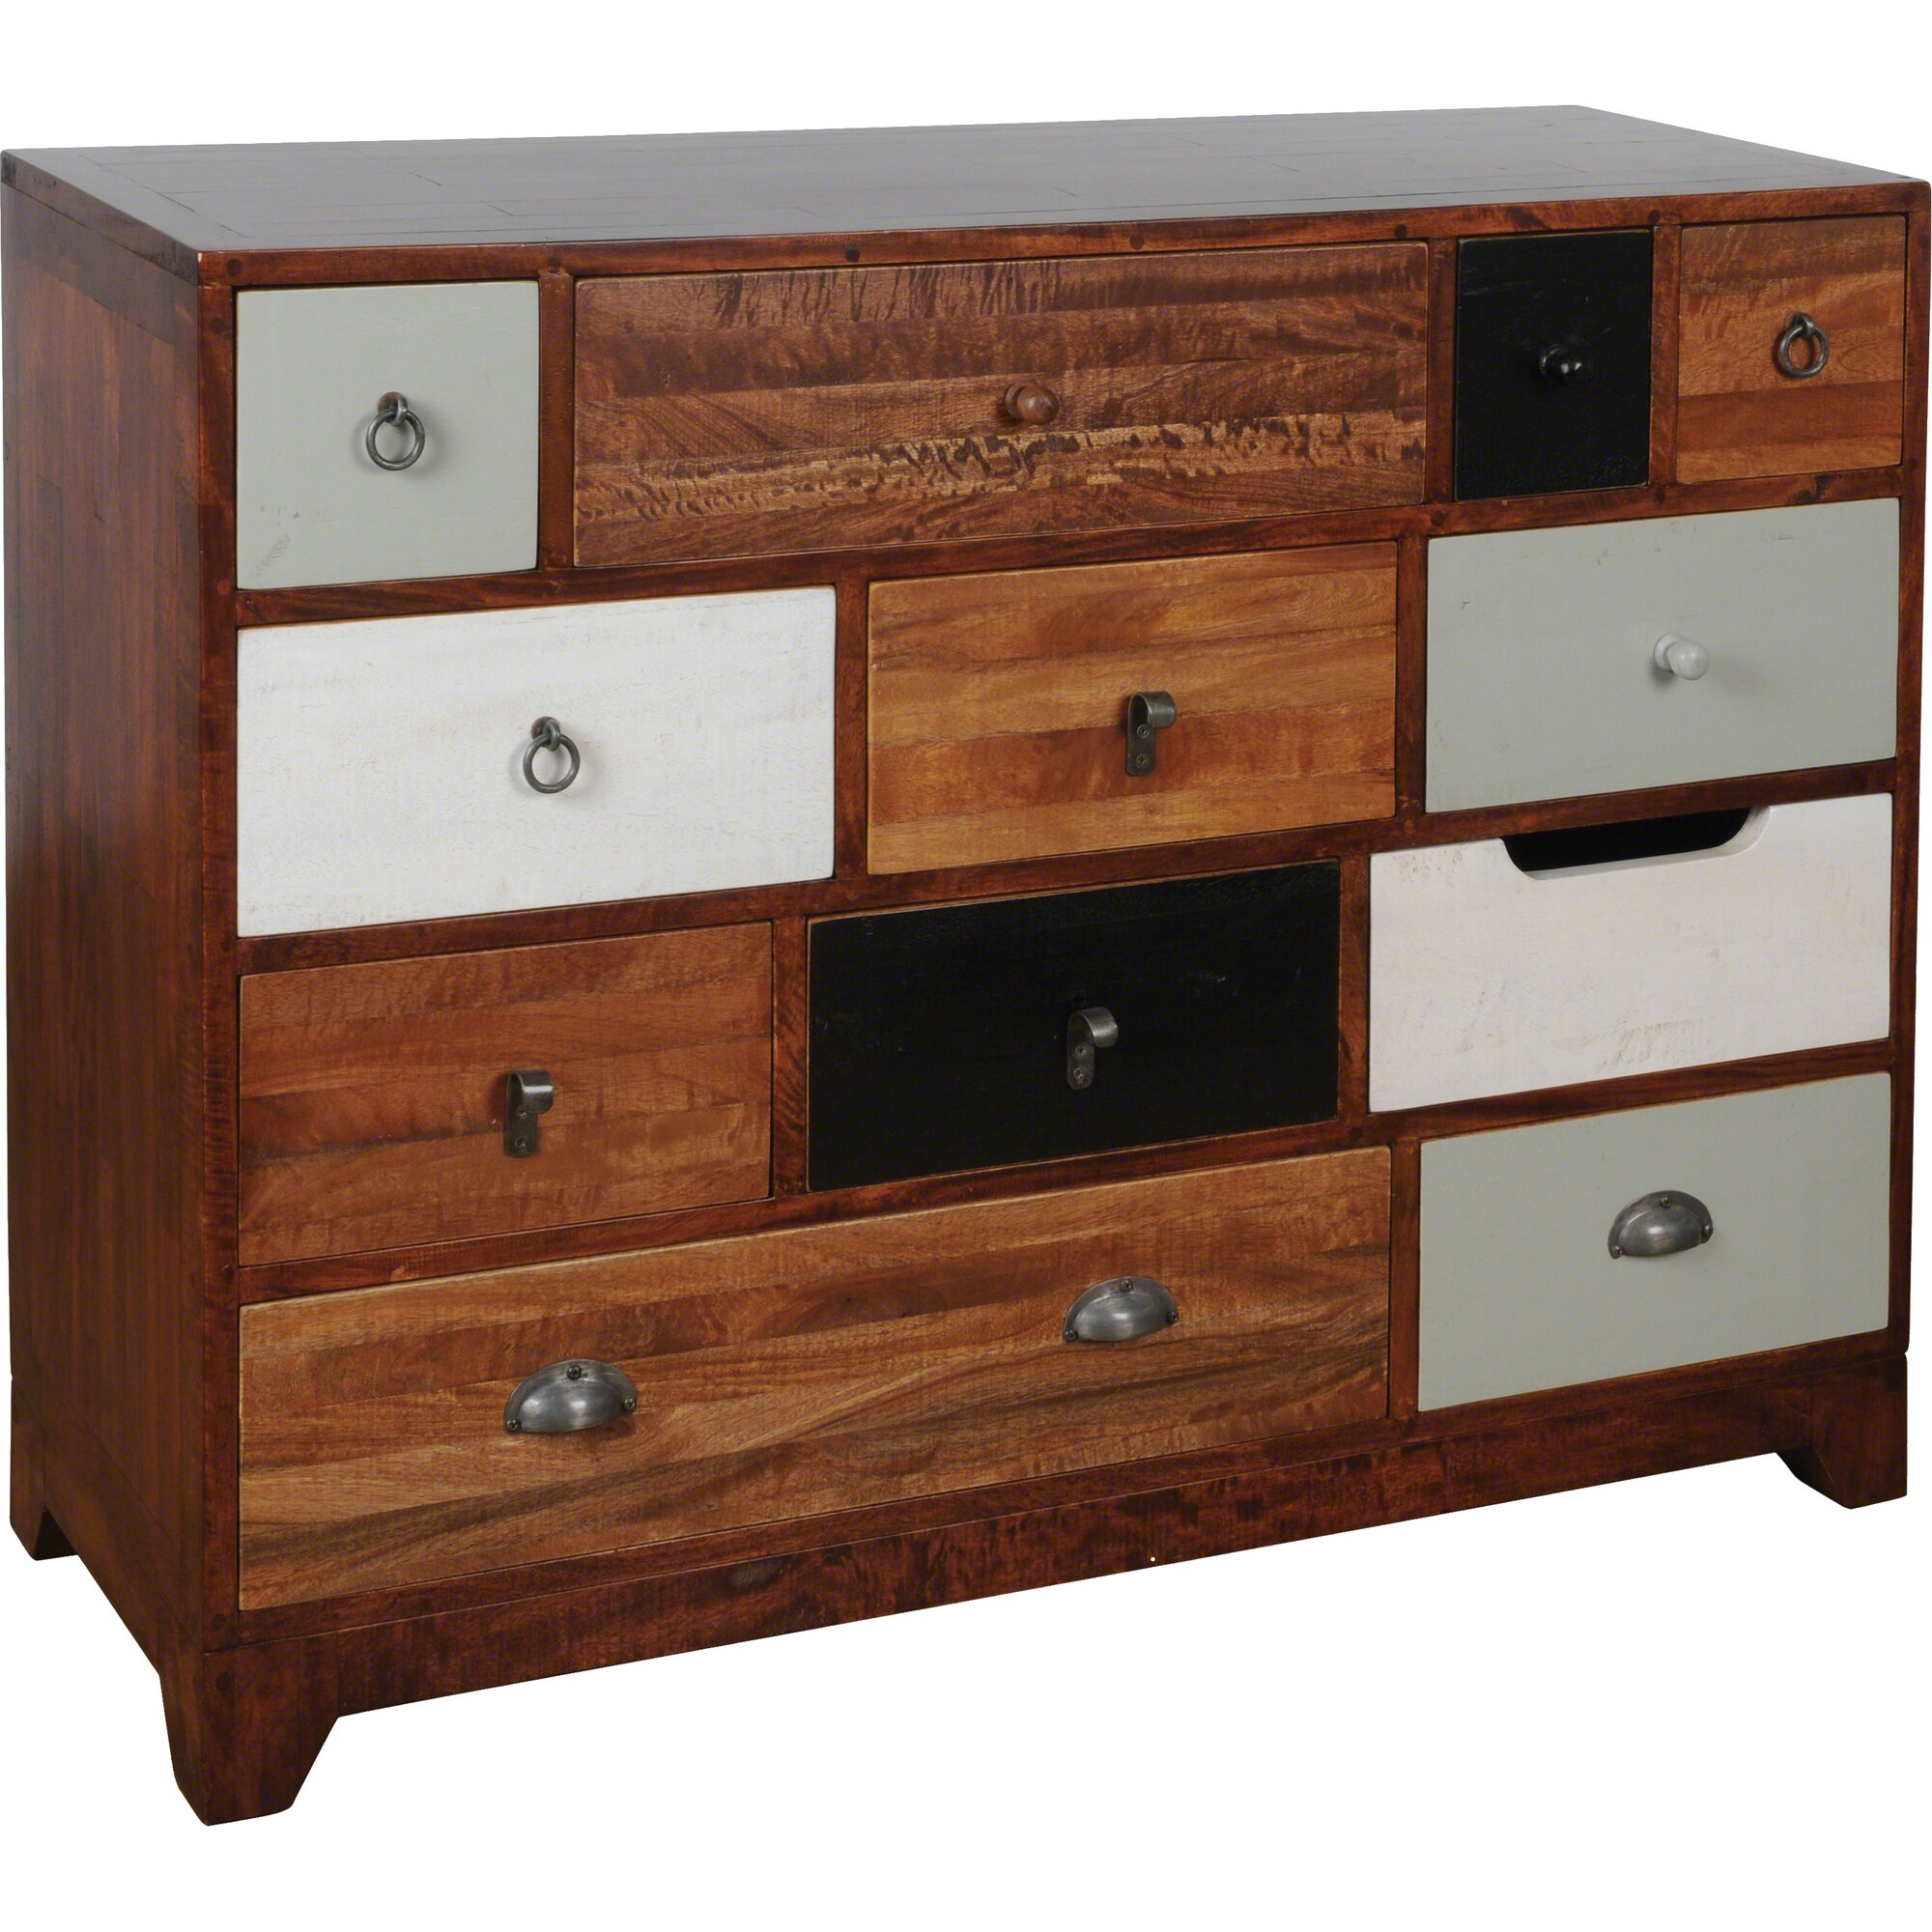 Borough wharf allegheny drawer chest of drawers